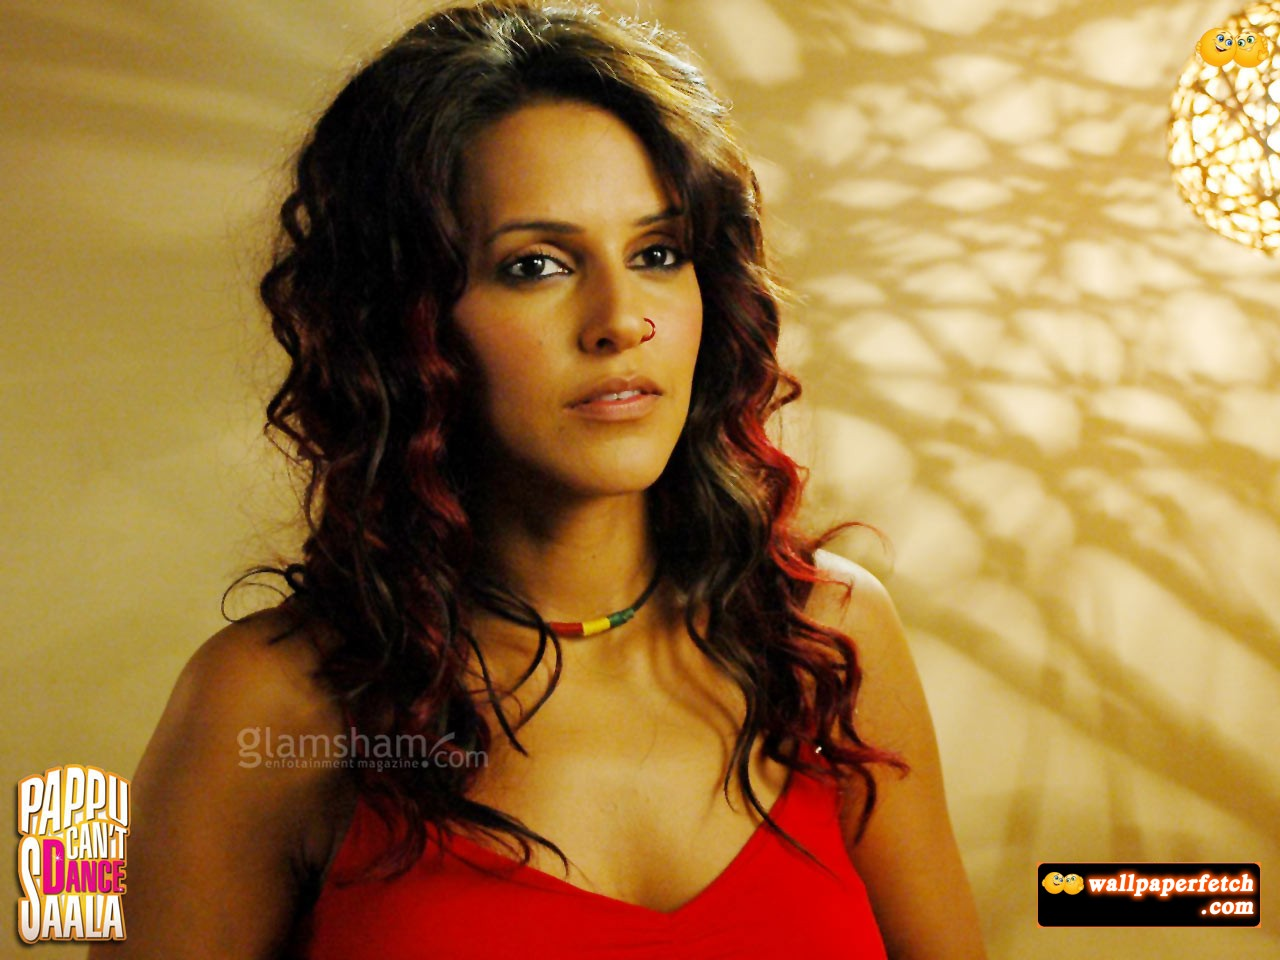 neha dhupia wallpapers hot - photo #9